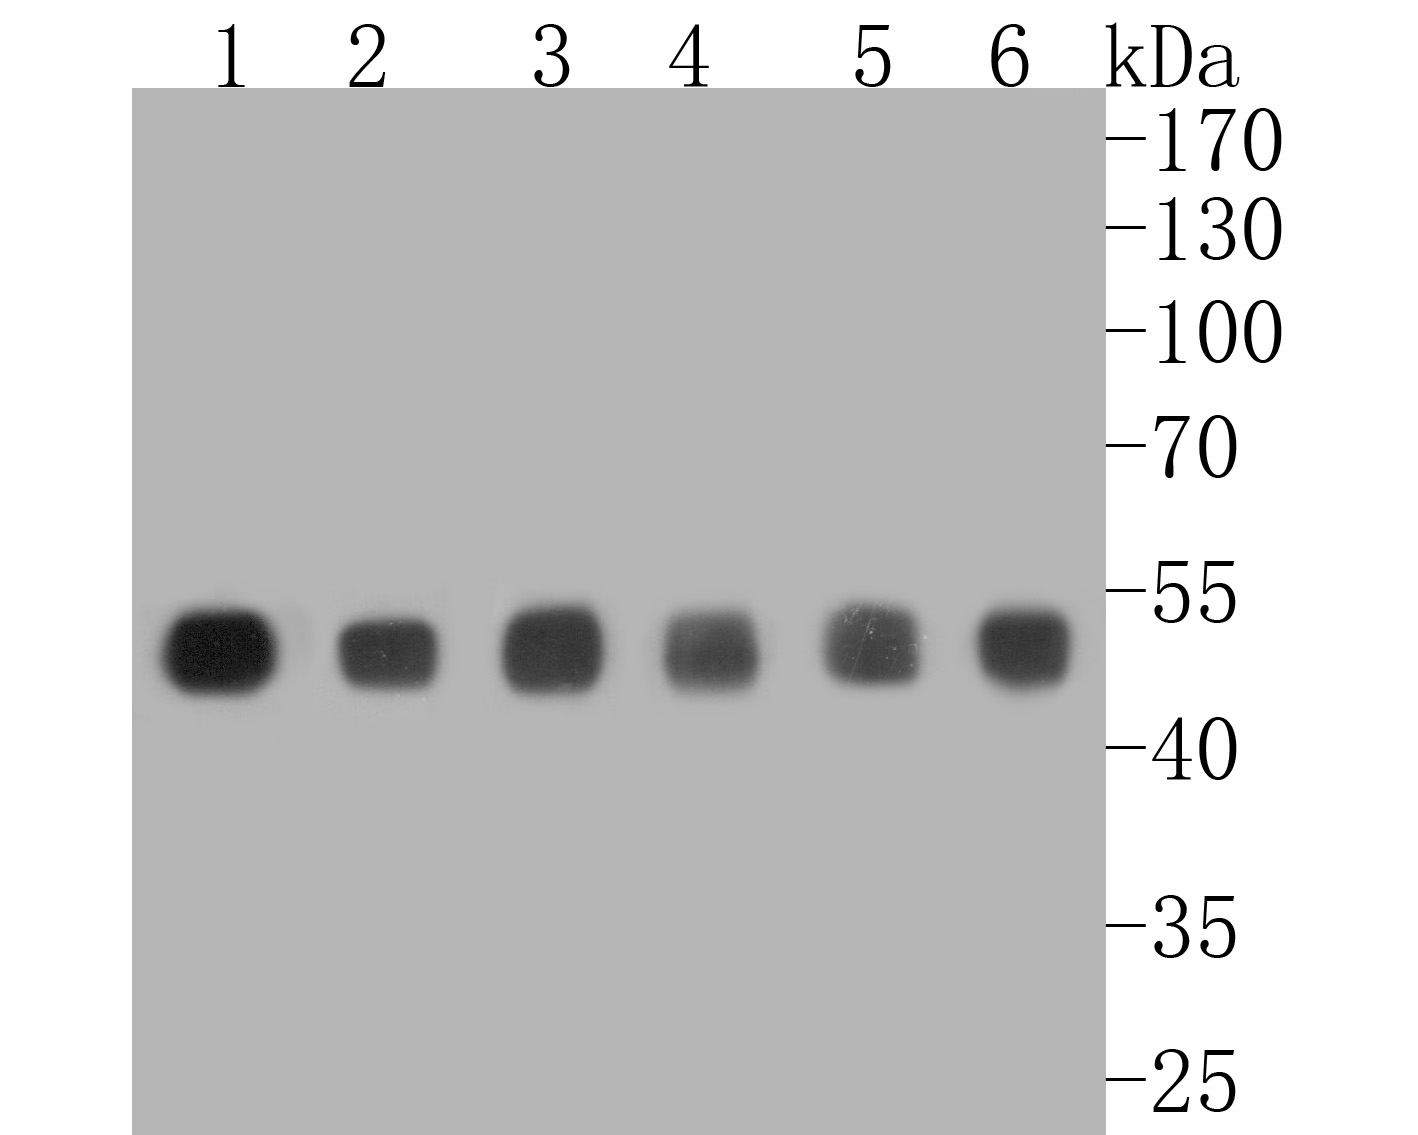 Western blot analysis of CTBP2 on different lysates. Proteins were transferred to a PVDF membrane and blocked with 5% BSA in PBS for 1 hour at room temperature. The primary antibody (ET7111-27, 1/1,000) was used in 5% BSA at room temperature for 2 hours. Goat Anti-Rabbit IgG - HRP Secondary Antibody (HA1001) at 1:5,000 dilution was used for 1 hour at room temperature.<br /> Positive control: <br /> Lane 1: rat testis tissue lysate<br /> Lane 2: Hela cell lysate<br /> Lane 3: NIH/3T3 cell lysate<br /> Lane 4: rat brain tissue lysate<br /> Lane 5: MCF-7 cell lysate<br /> Lane 6: A431 cell lysate